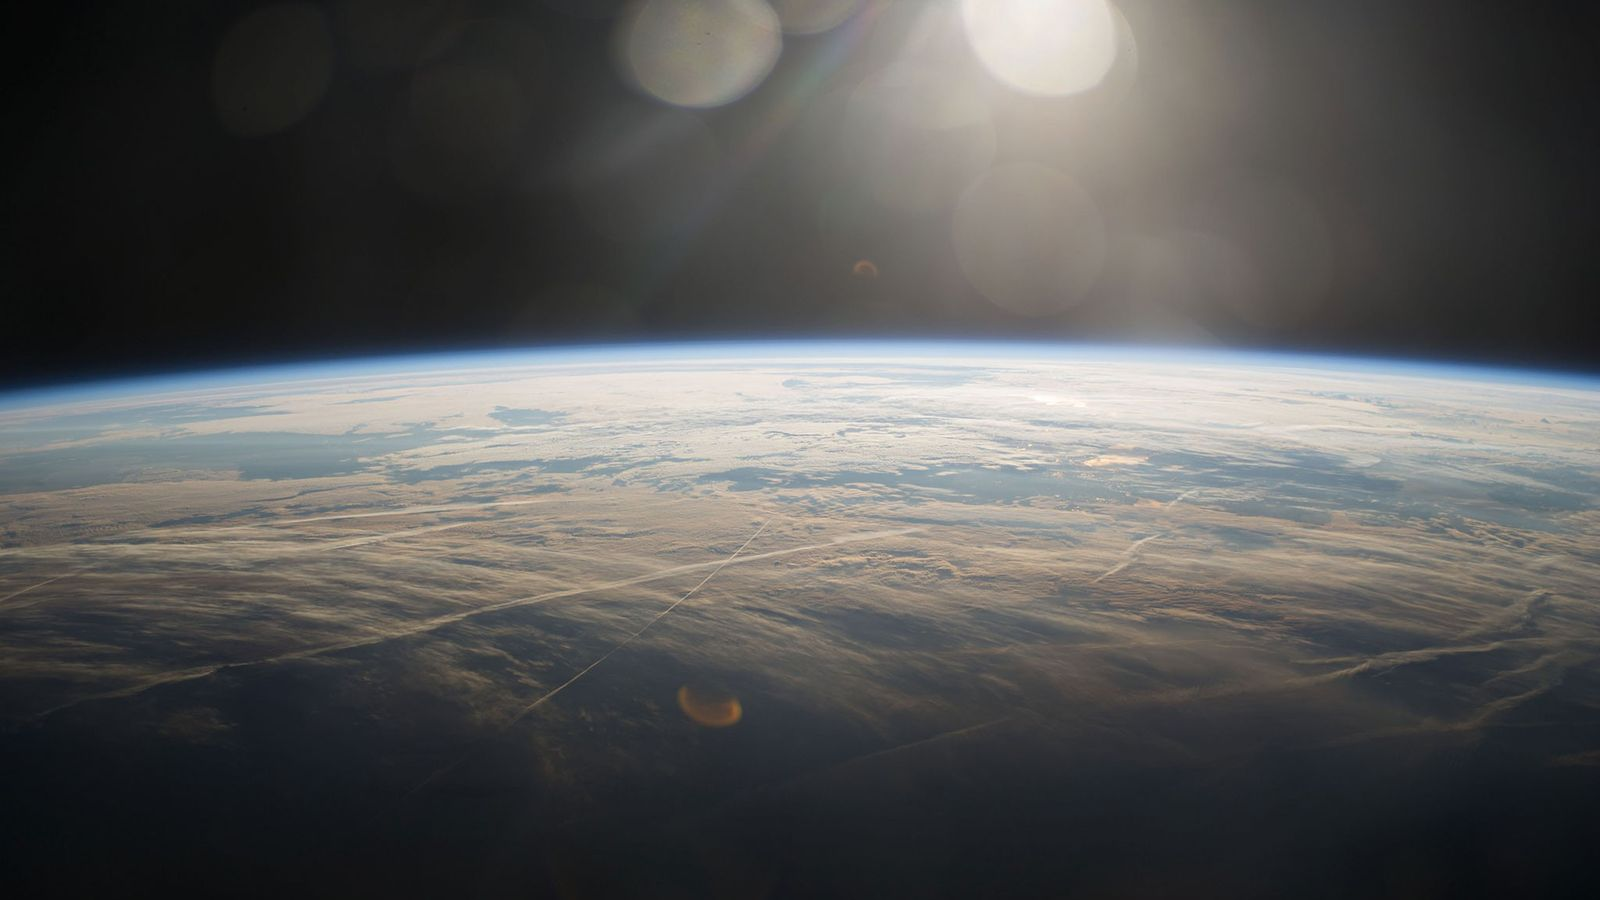 A sunrise over the blue planet taken from the International Space Station.